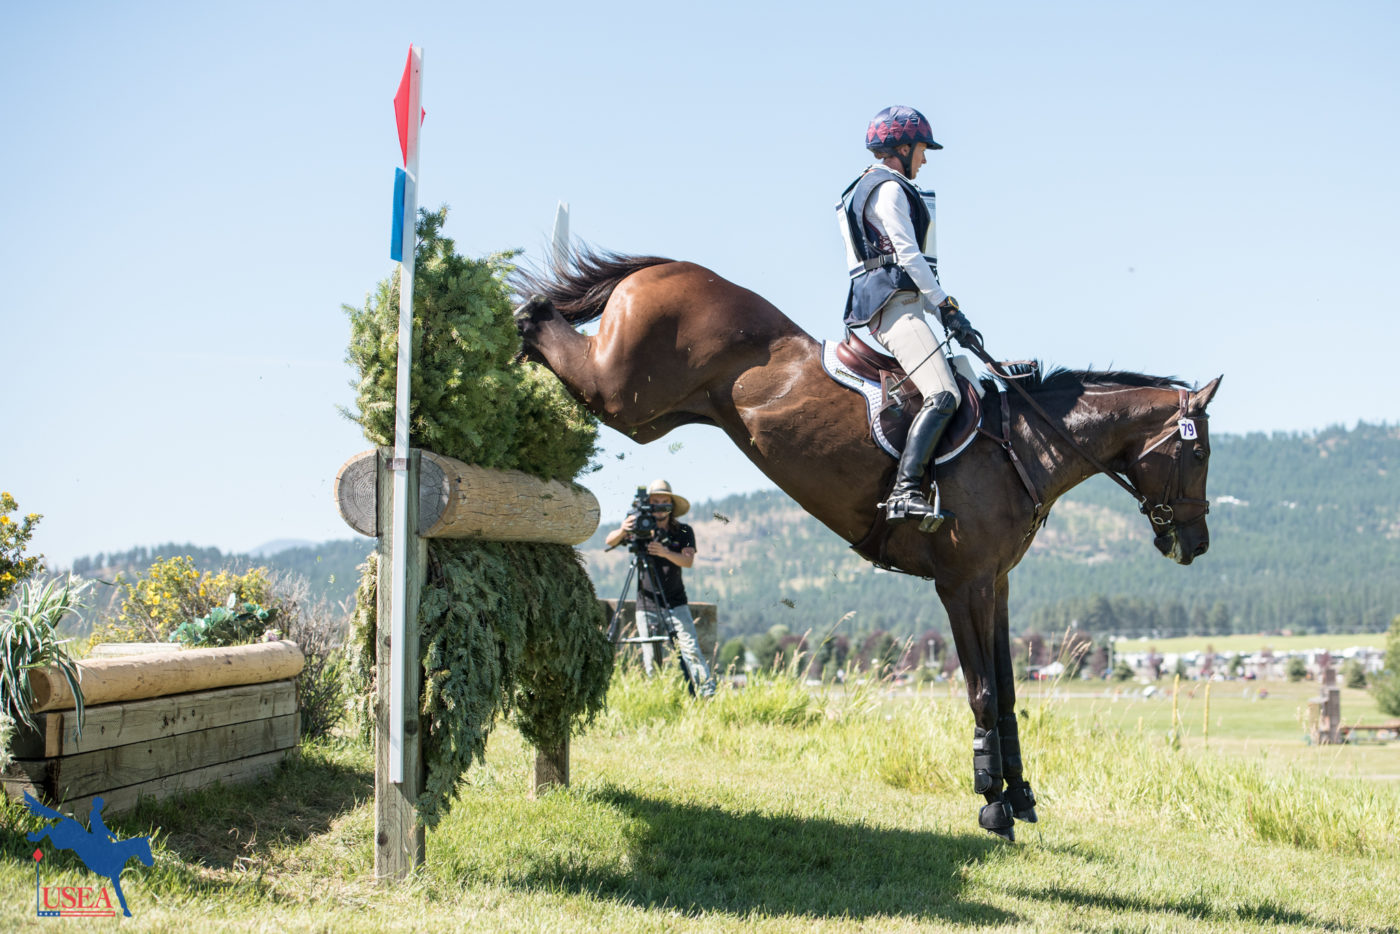 CCI3* - 5th - Andrea Baxter and Indy 500